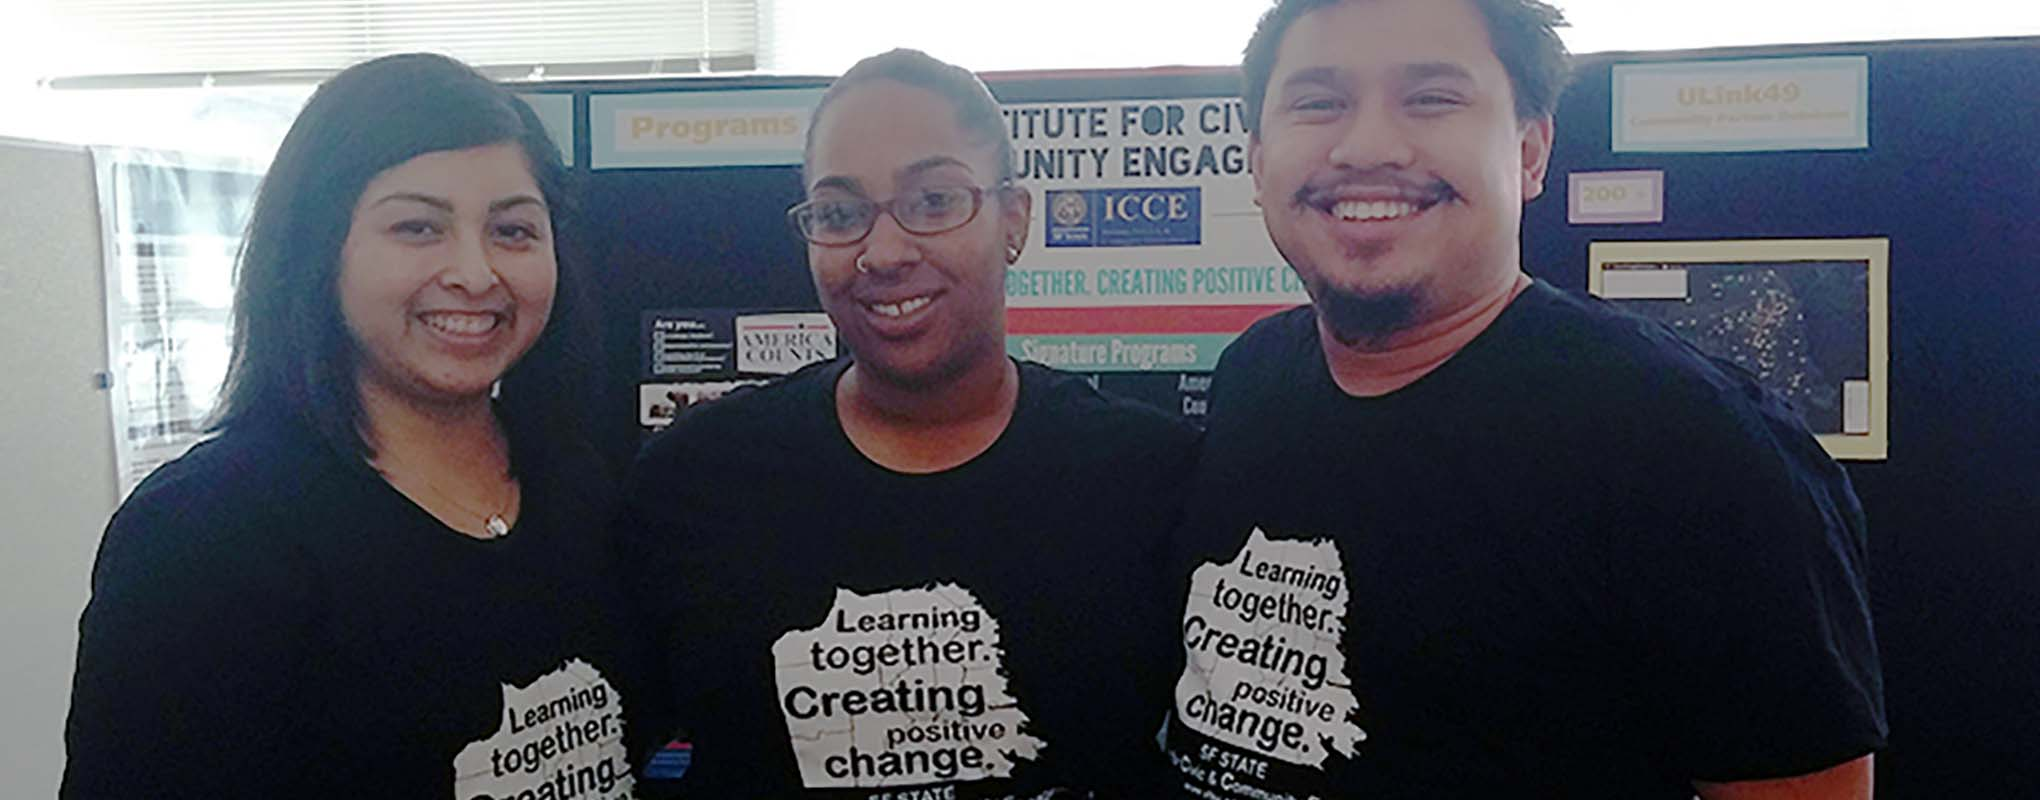 ICCE students wearing matching t-shirts.